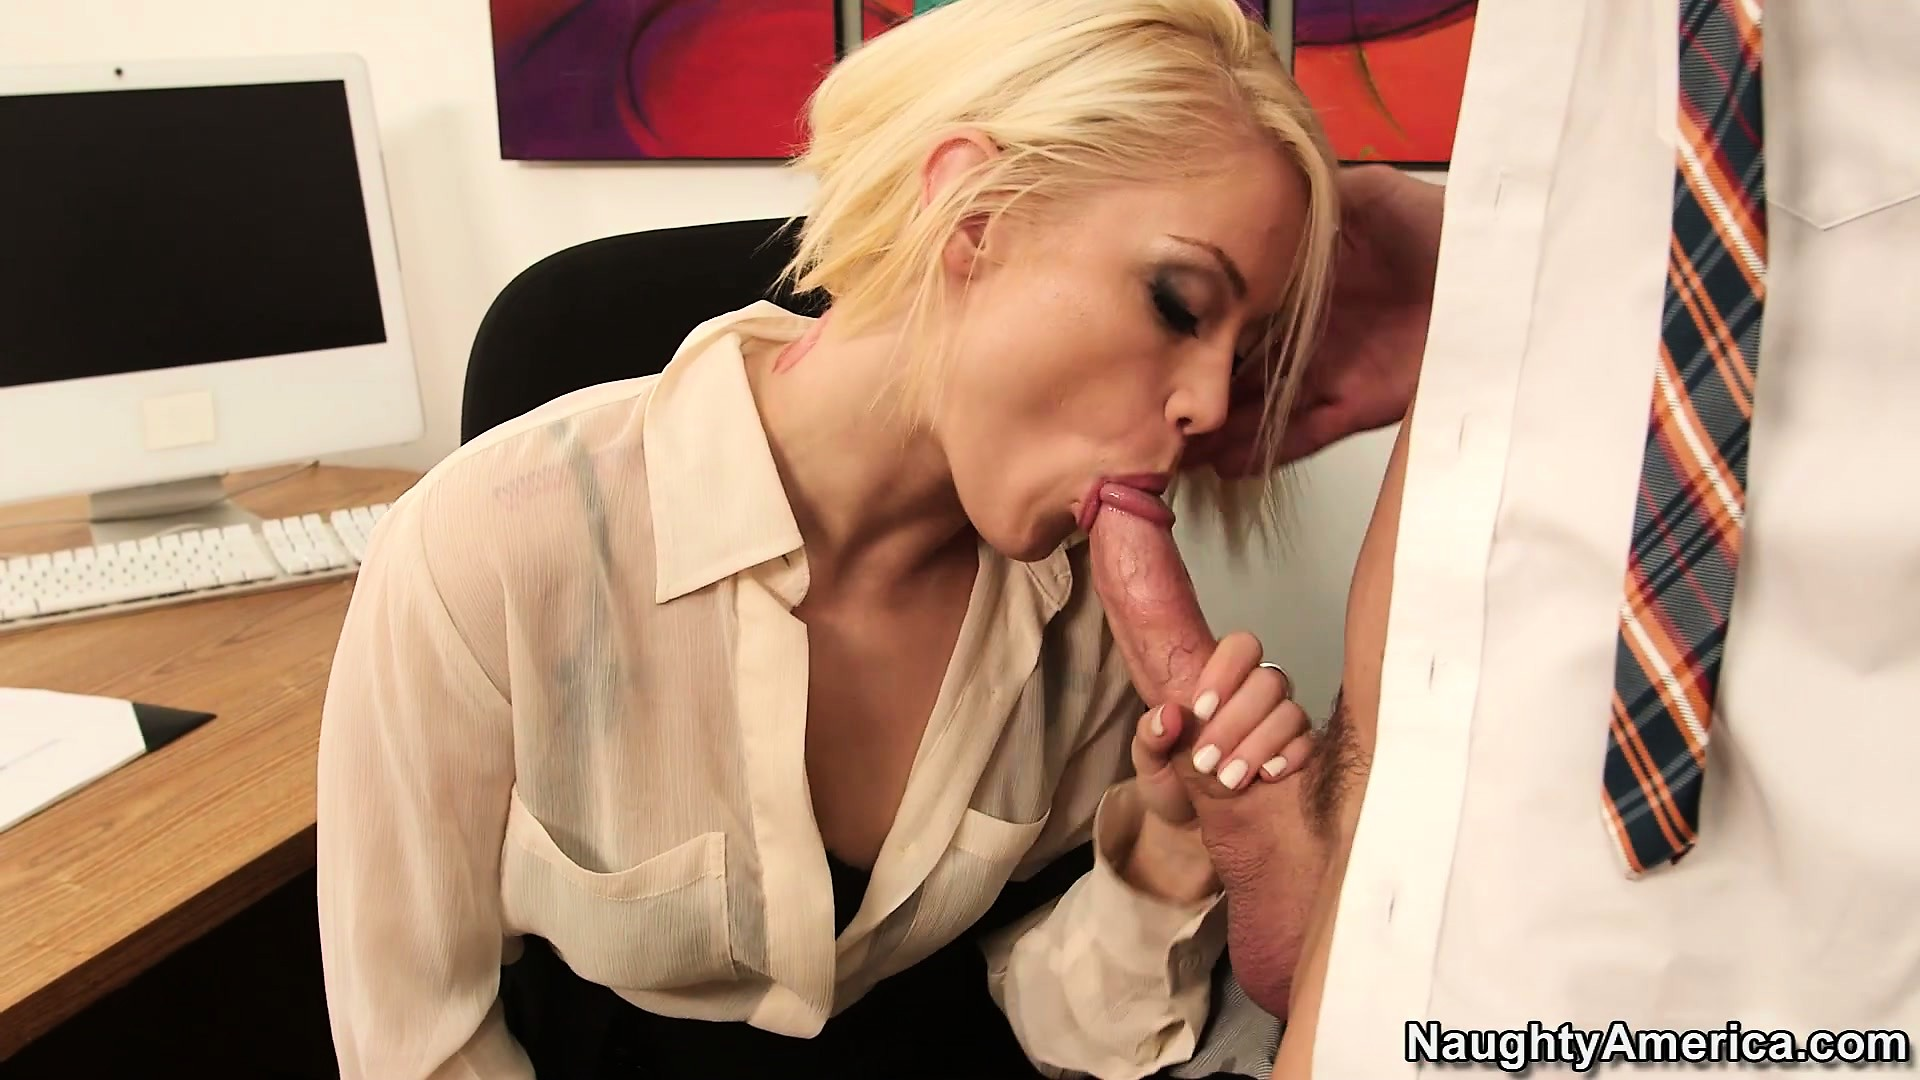 Porno Video of Hot Blonde With Spicy Tits Ash Hollywood Brings Her Office Fantasies To Life